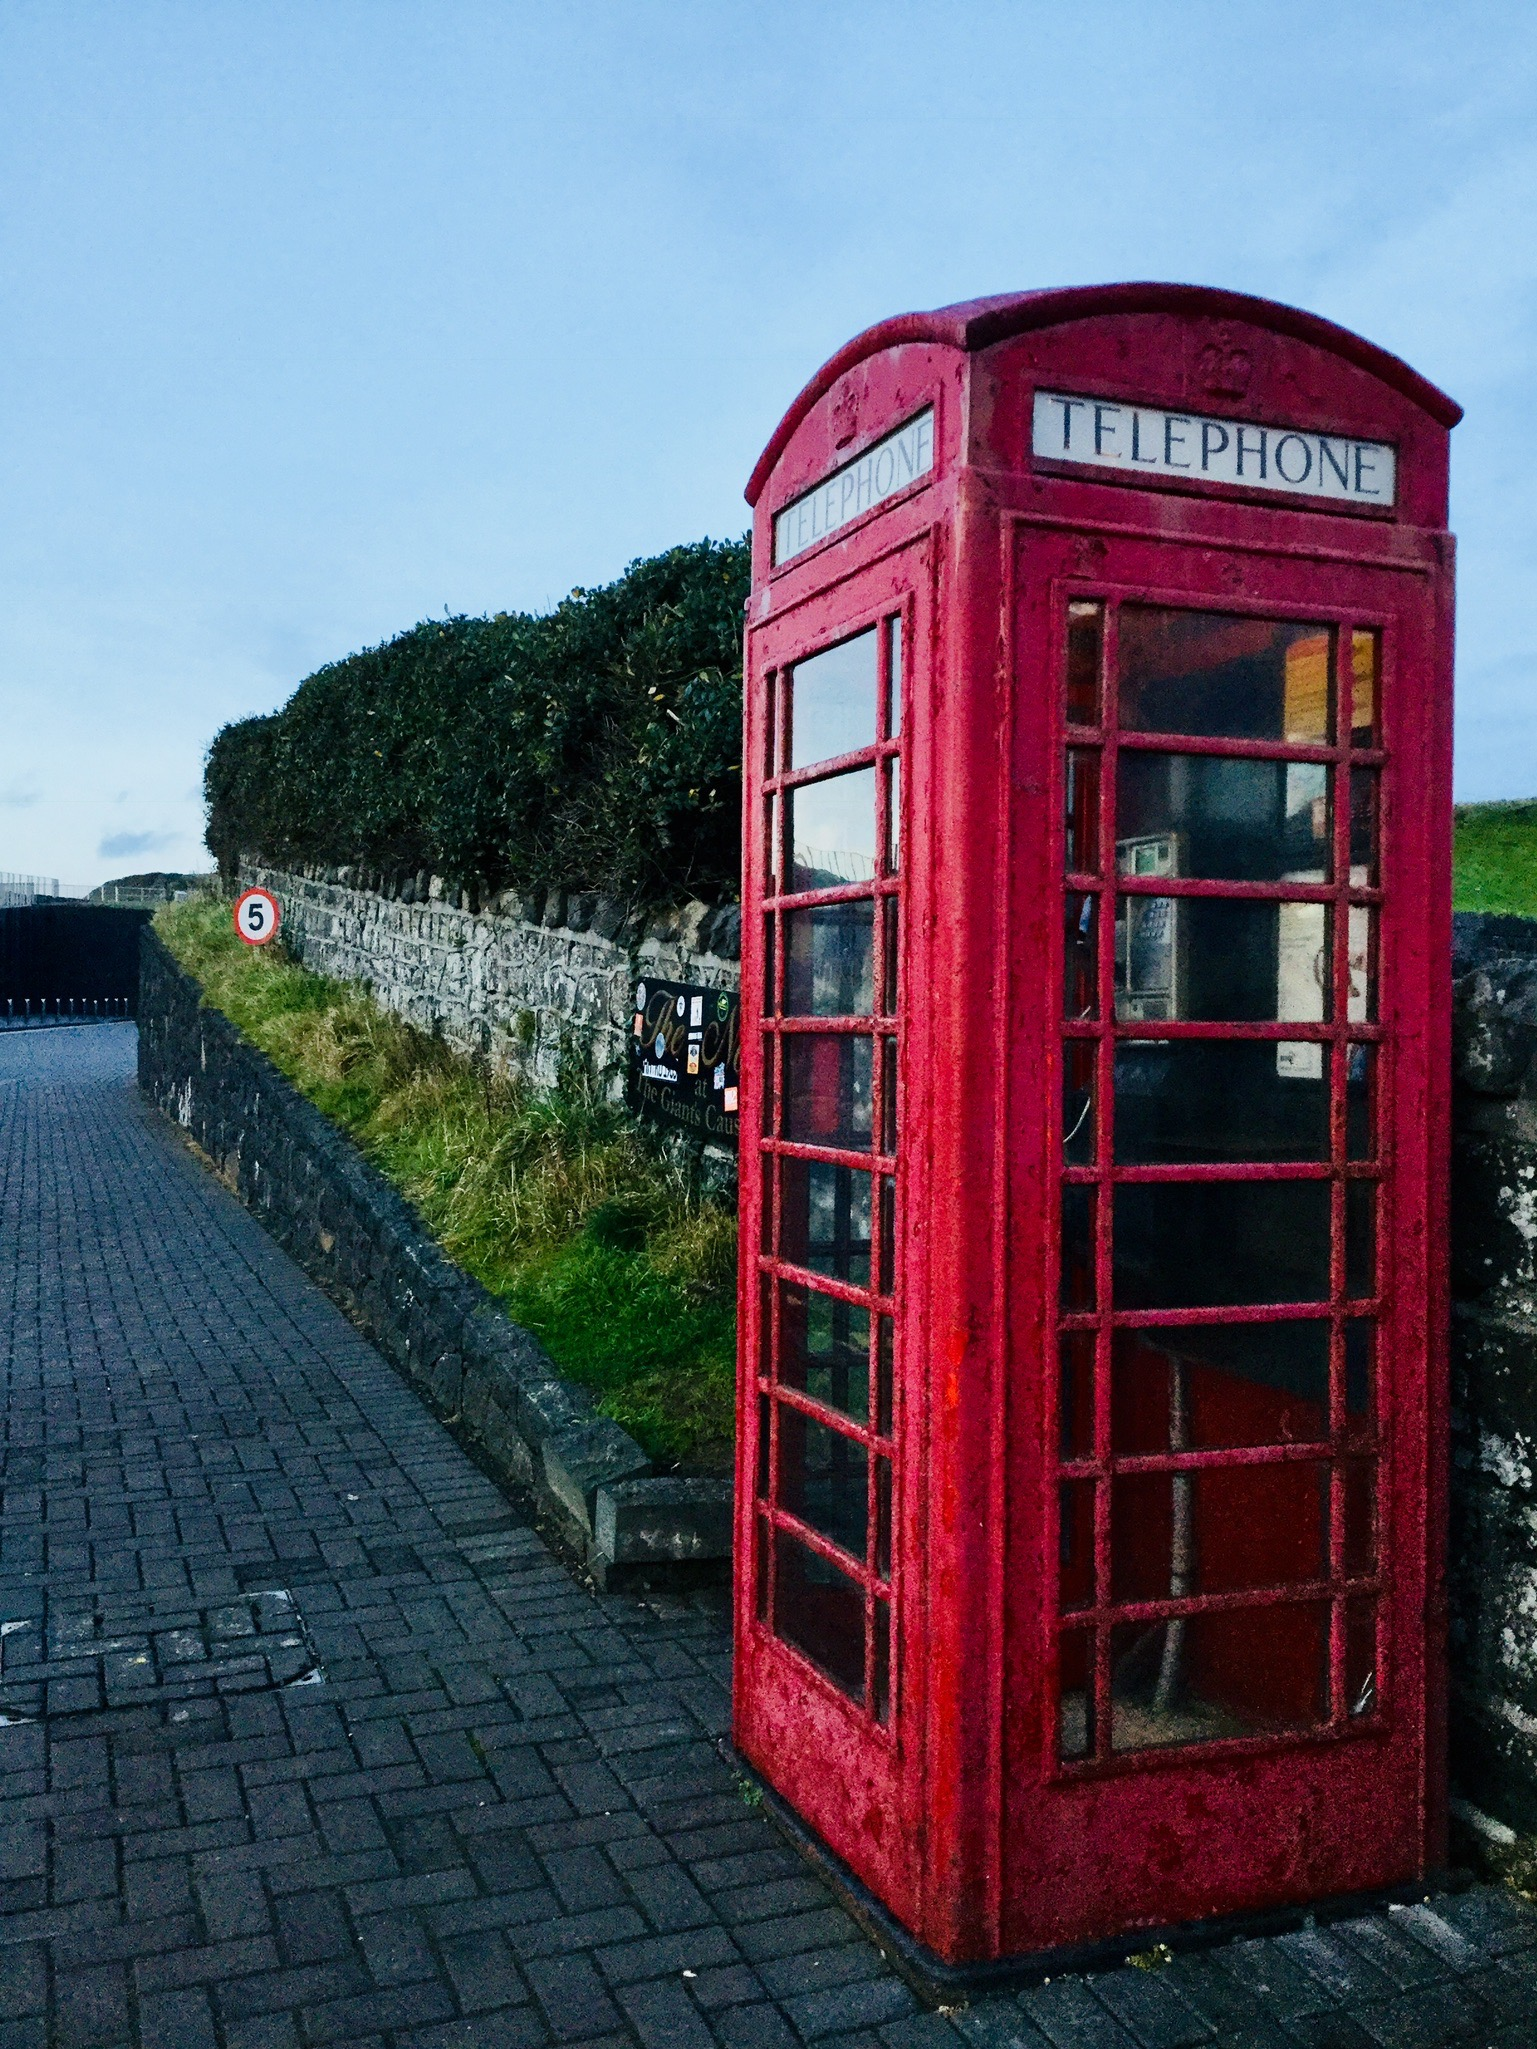 UK's Phone Booth